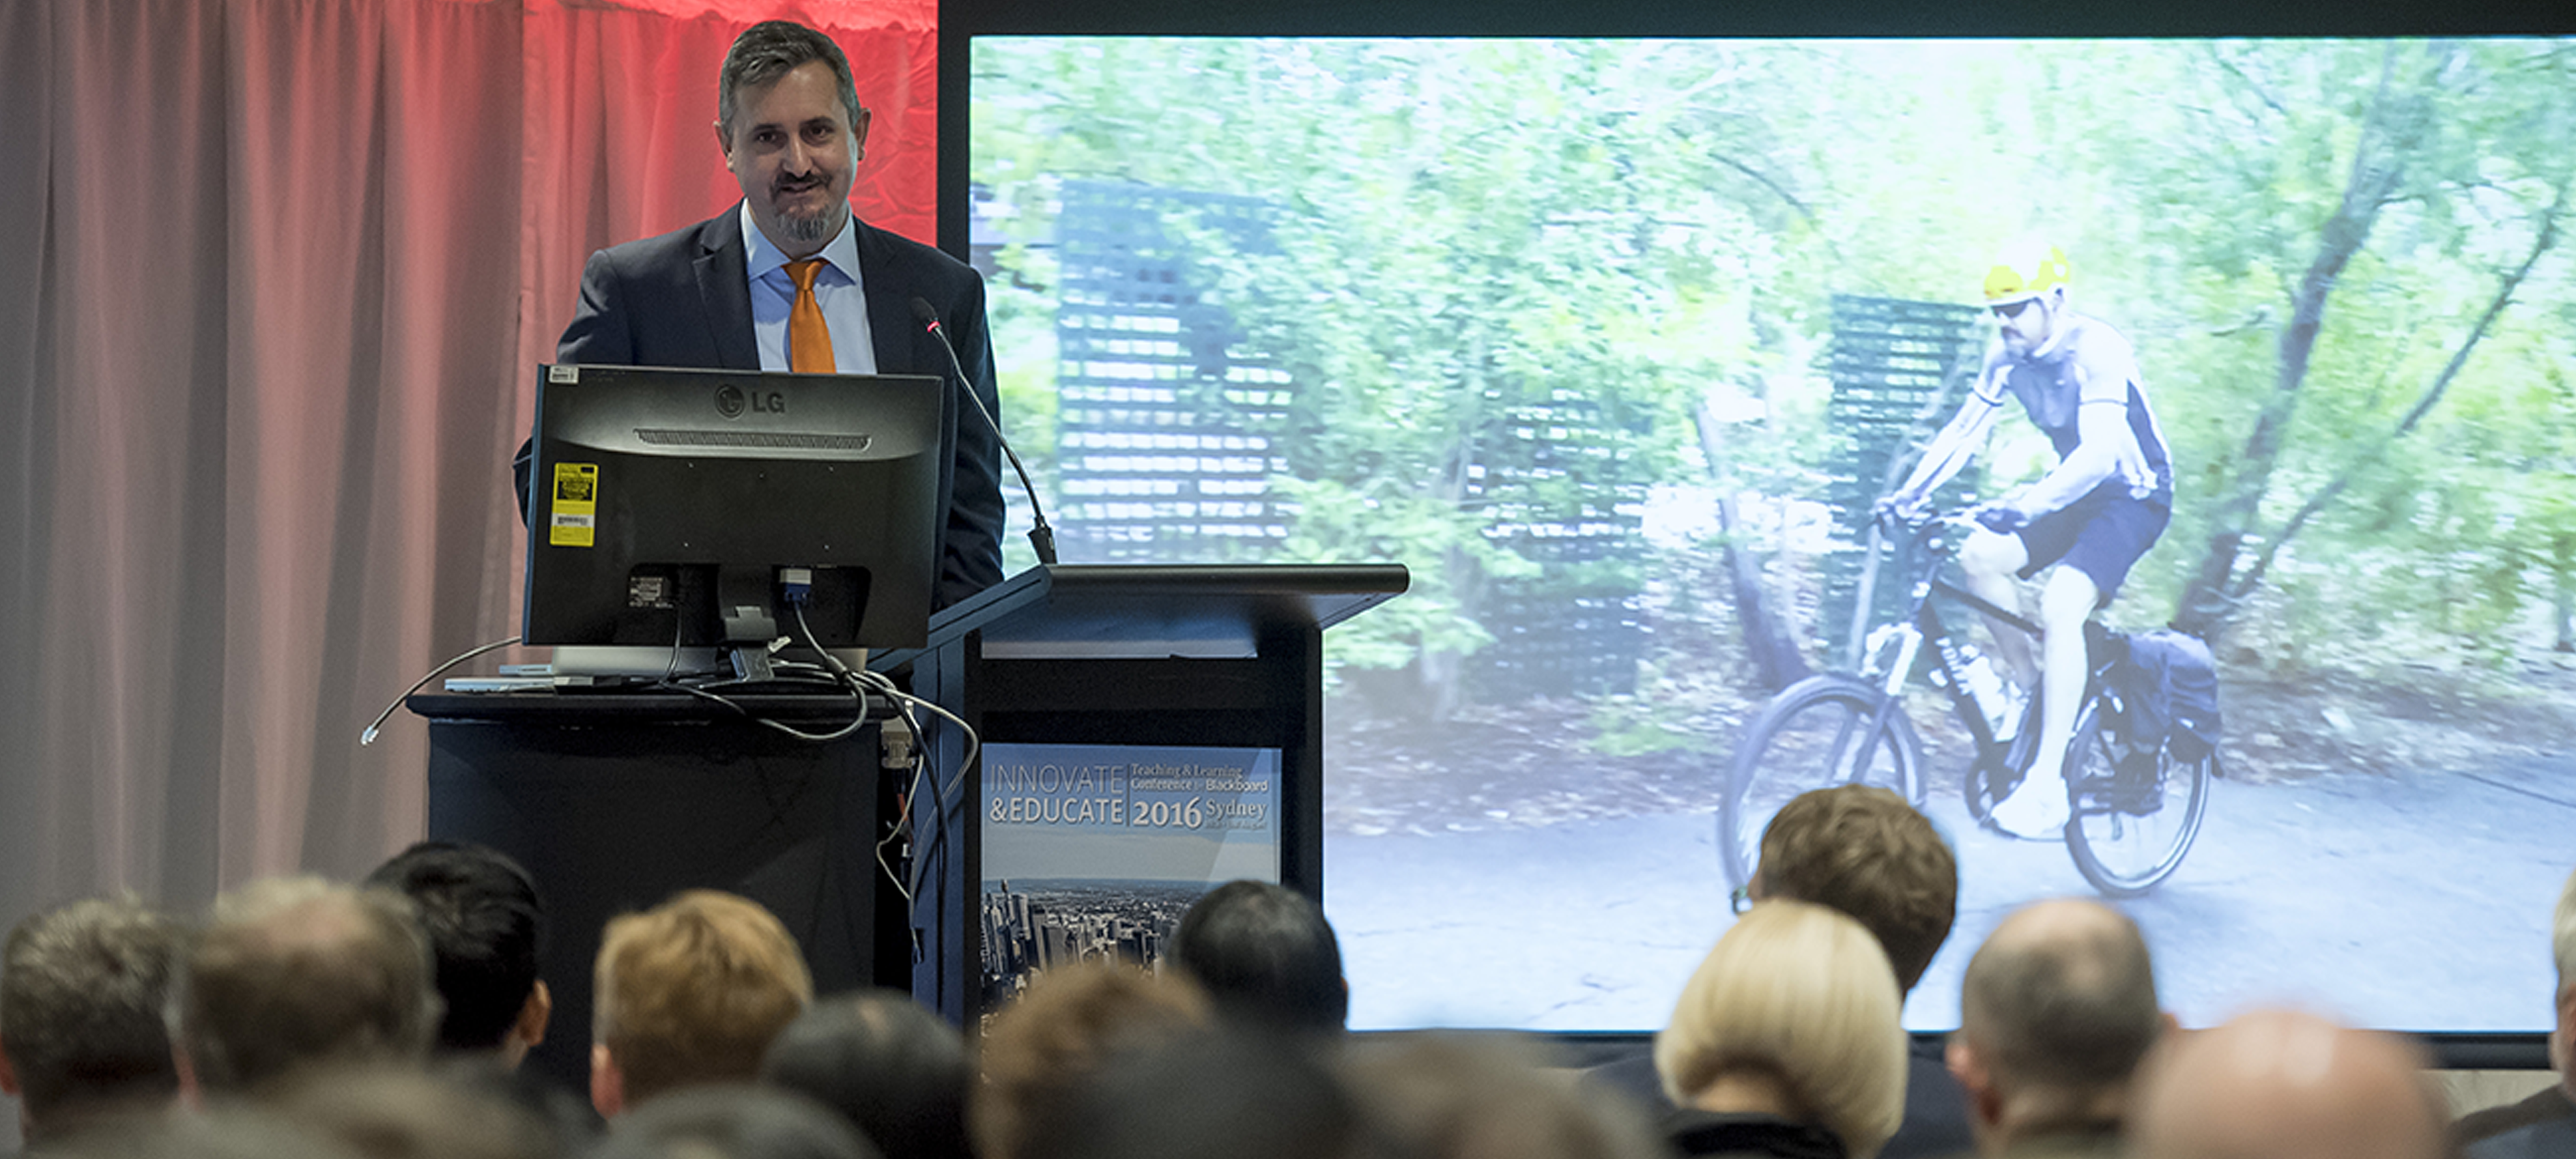 Martin Dougiamas, founder and CEO of Moodle during the TLC ANZ 2016. Photo: AFP Wendell Teodoro.